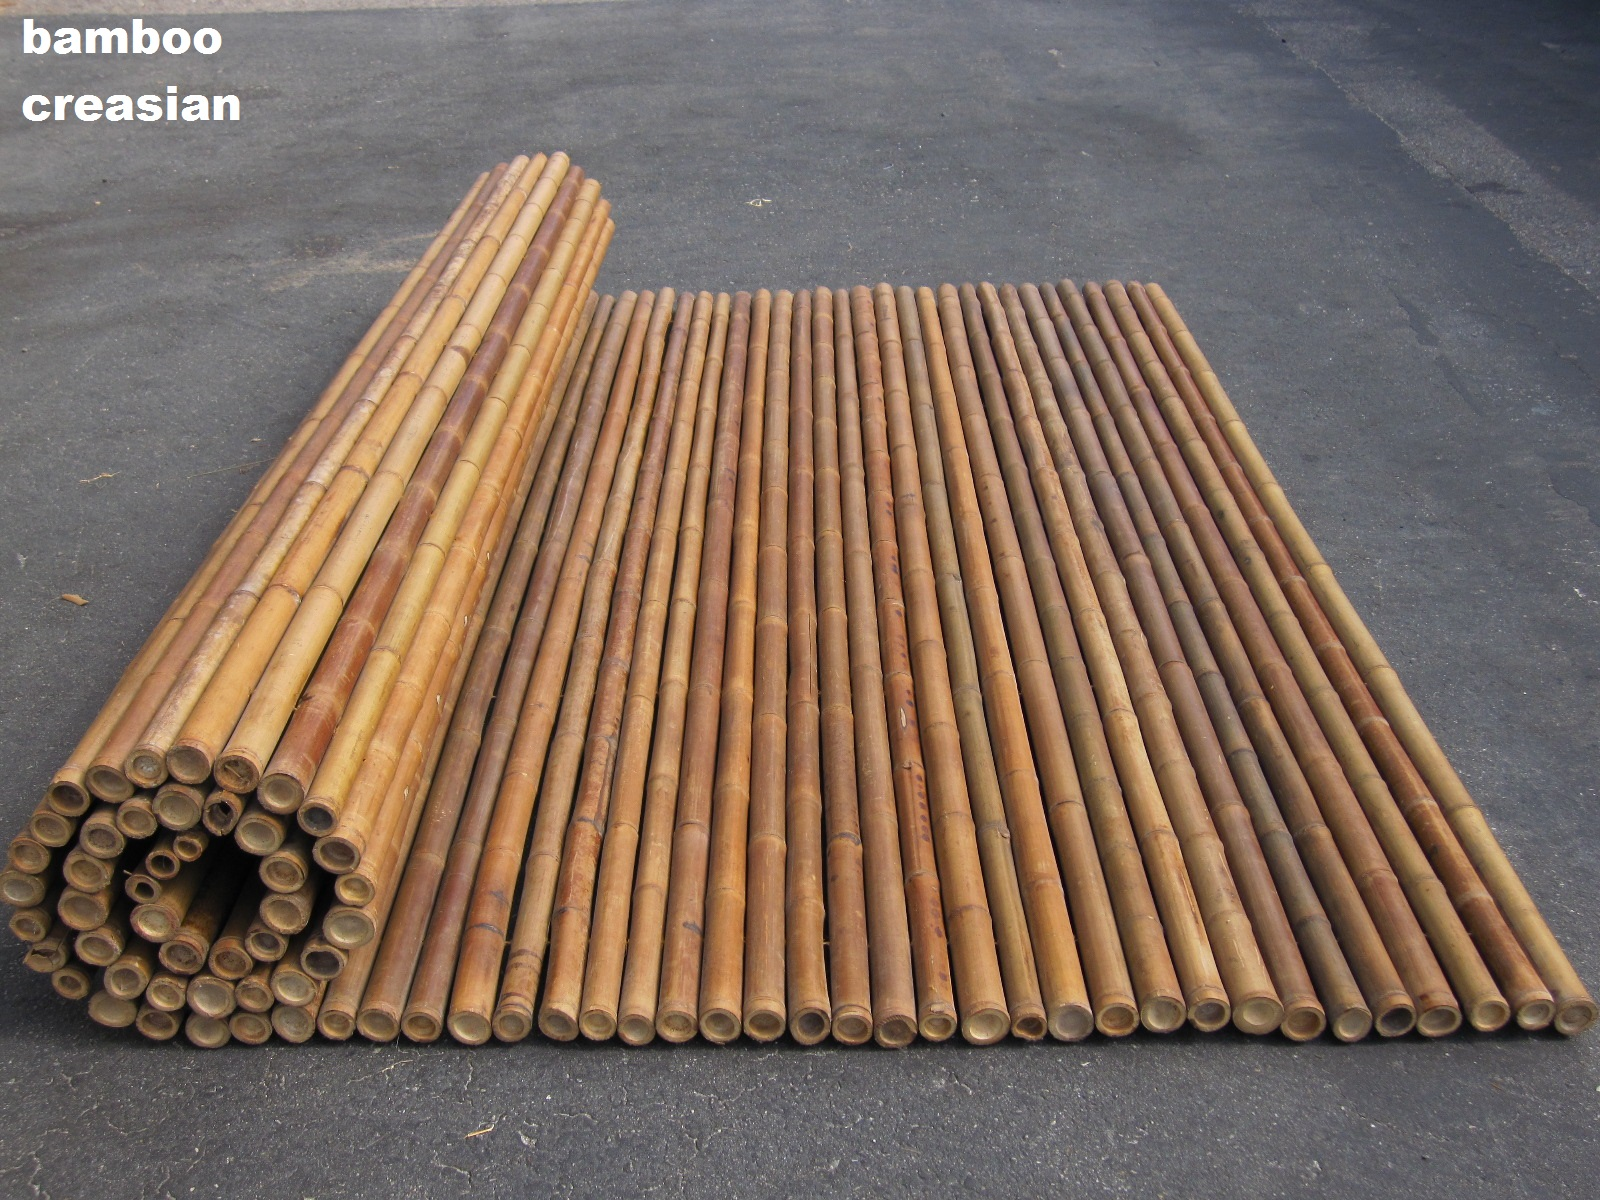 Bamboo Fencing Roll 6ft X 8ft And 1inch A Half Diameter To 2 Inches Every Cane Poles Are Threaded Together With